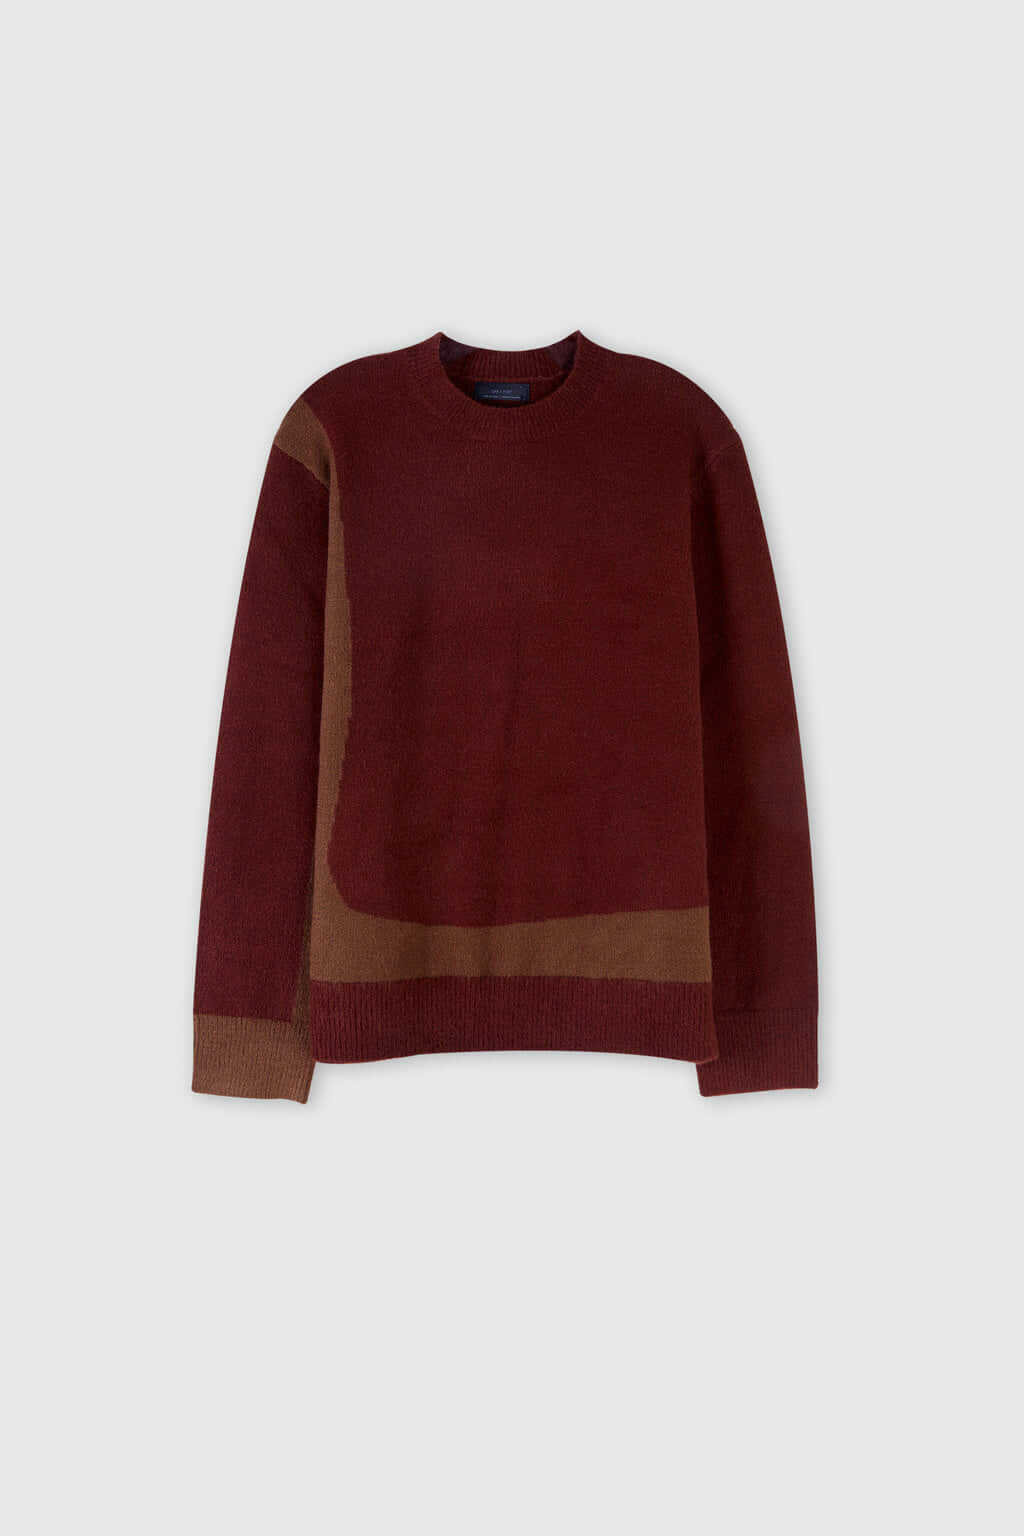 Sweater 2675 Wine 11